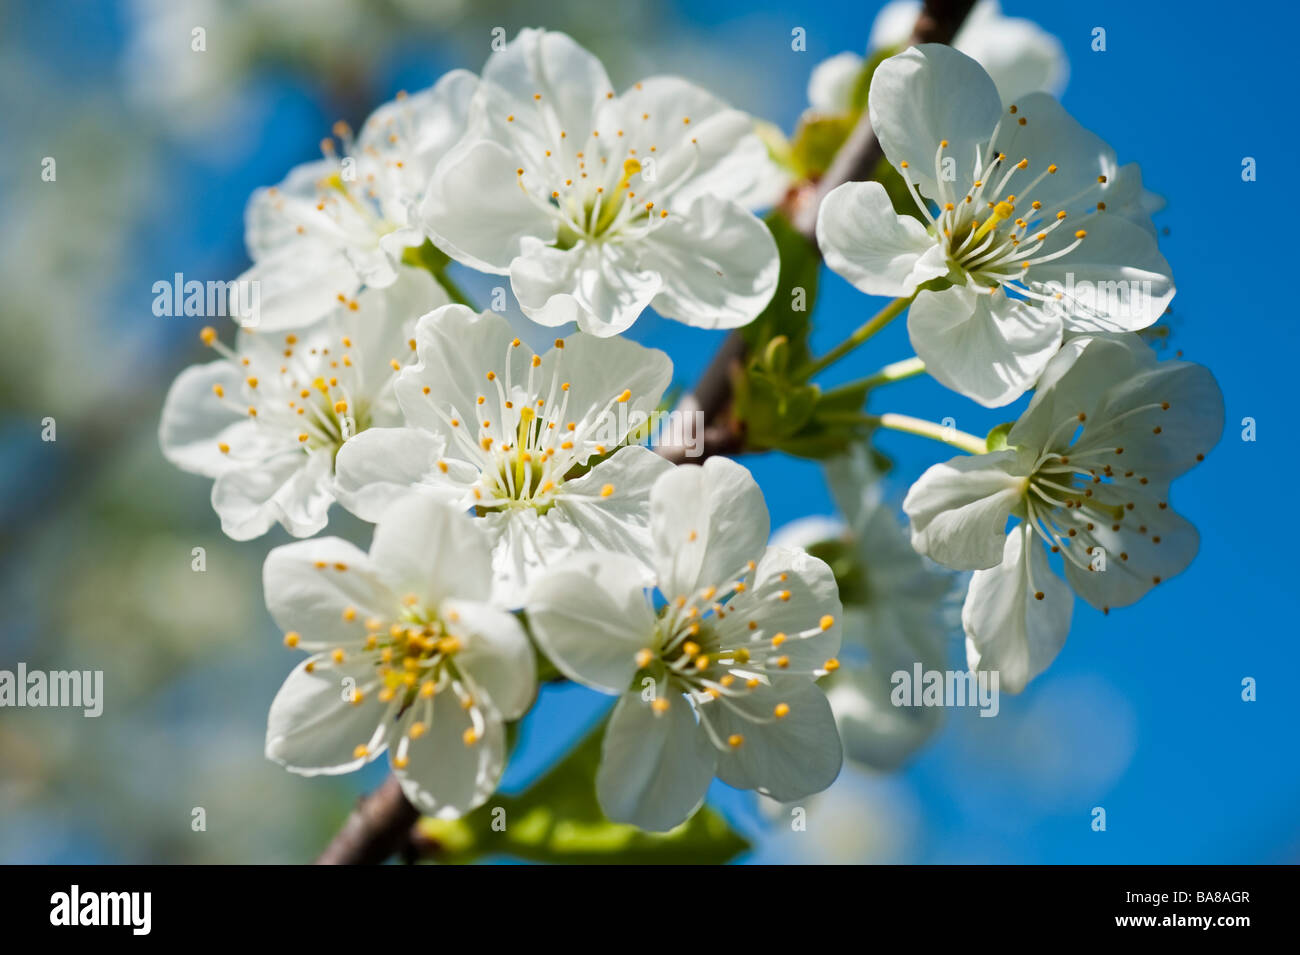 Blooming sour morello cherry Prunus cerasus with white blossoms on a branch against blue sky | Blühende Sauerkirsche - Stock Image